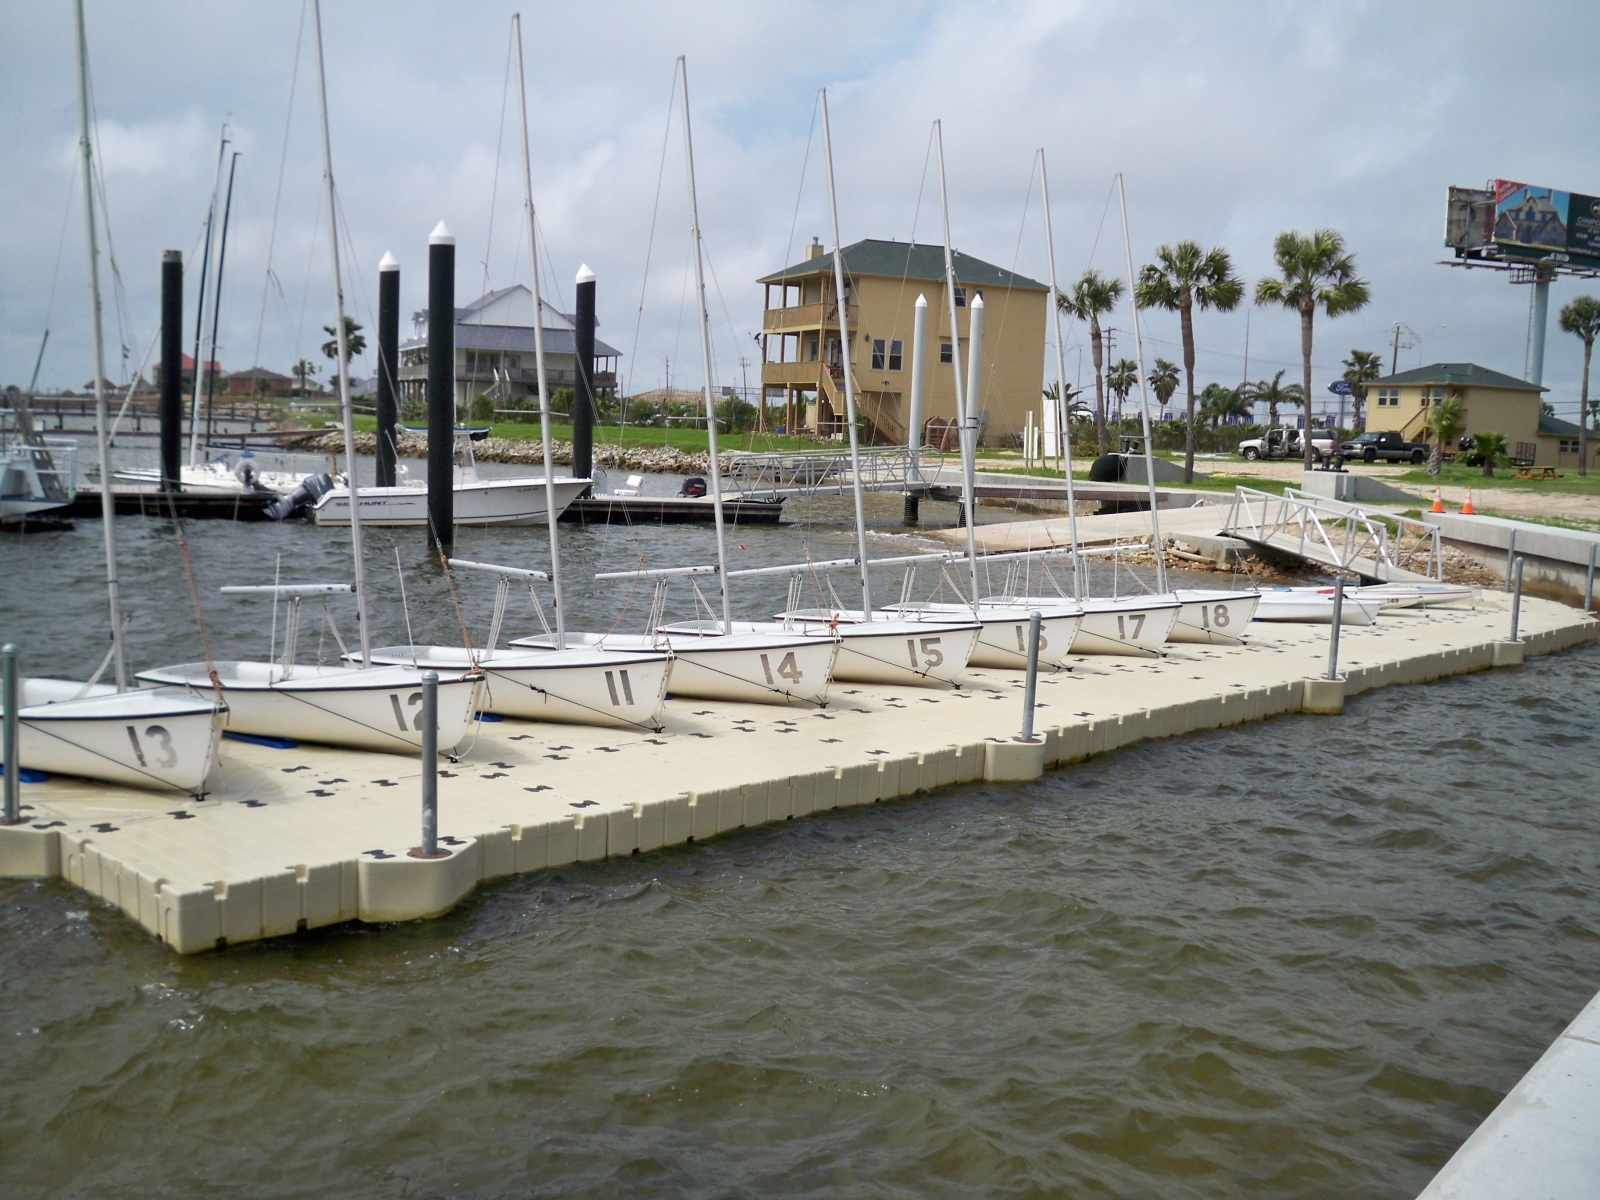 Jr.-Sailboats-on-Boat-Ports-Scout-Sea-Base-Galveston